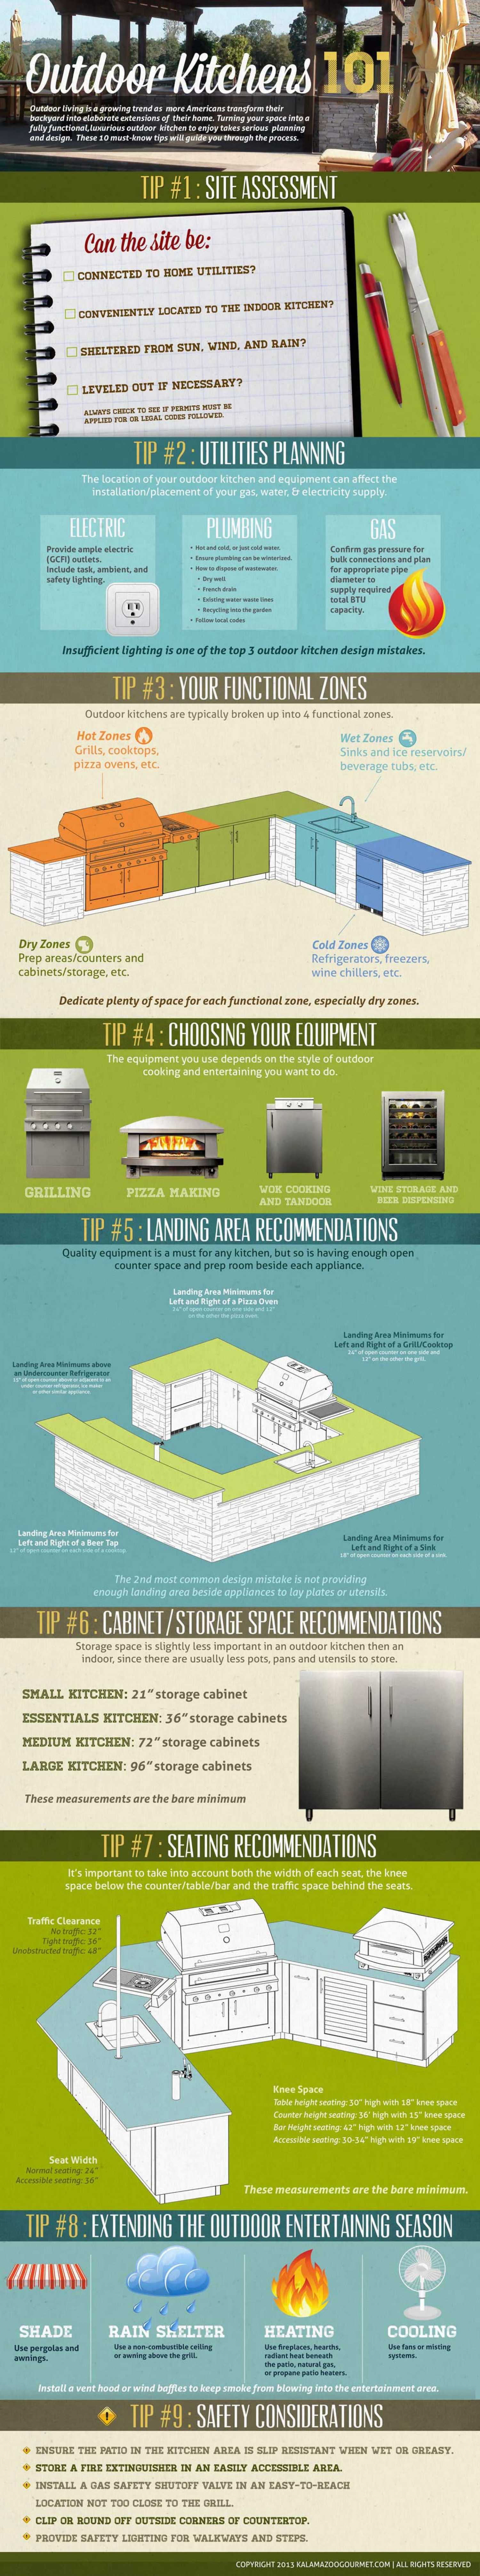 Outdoor Kitchens 101 Infographic